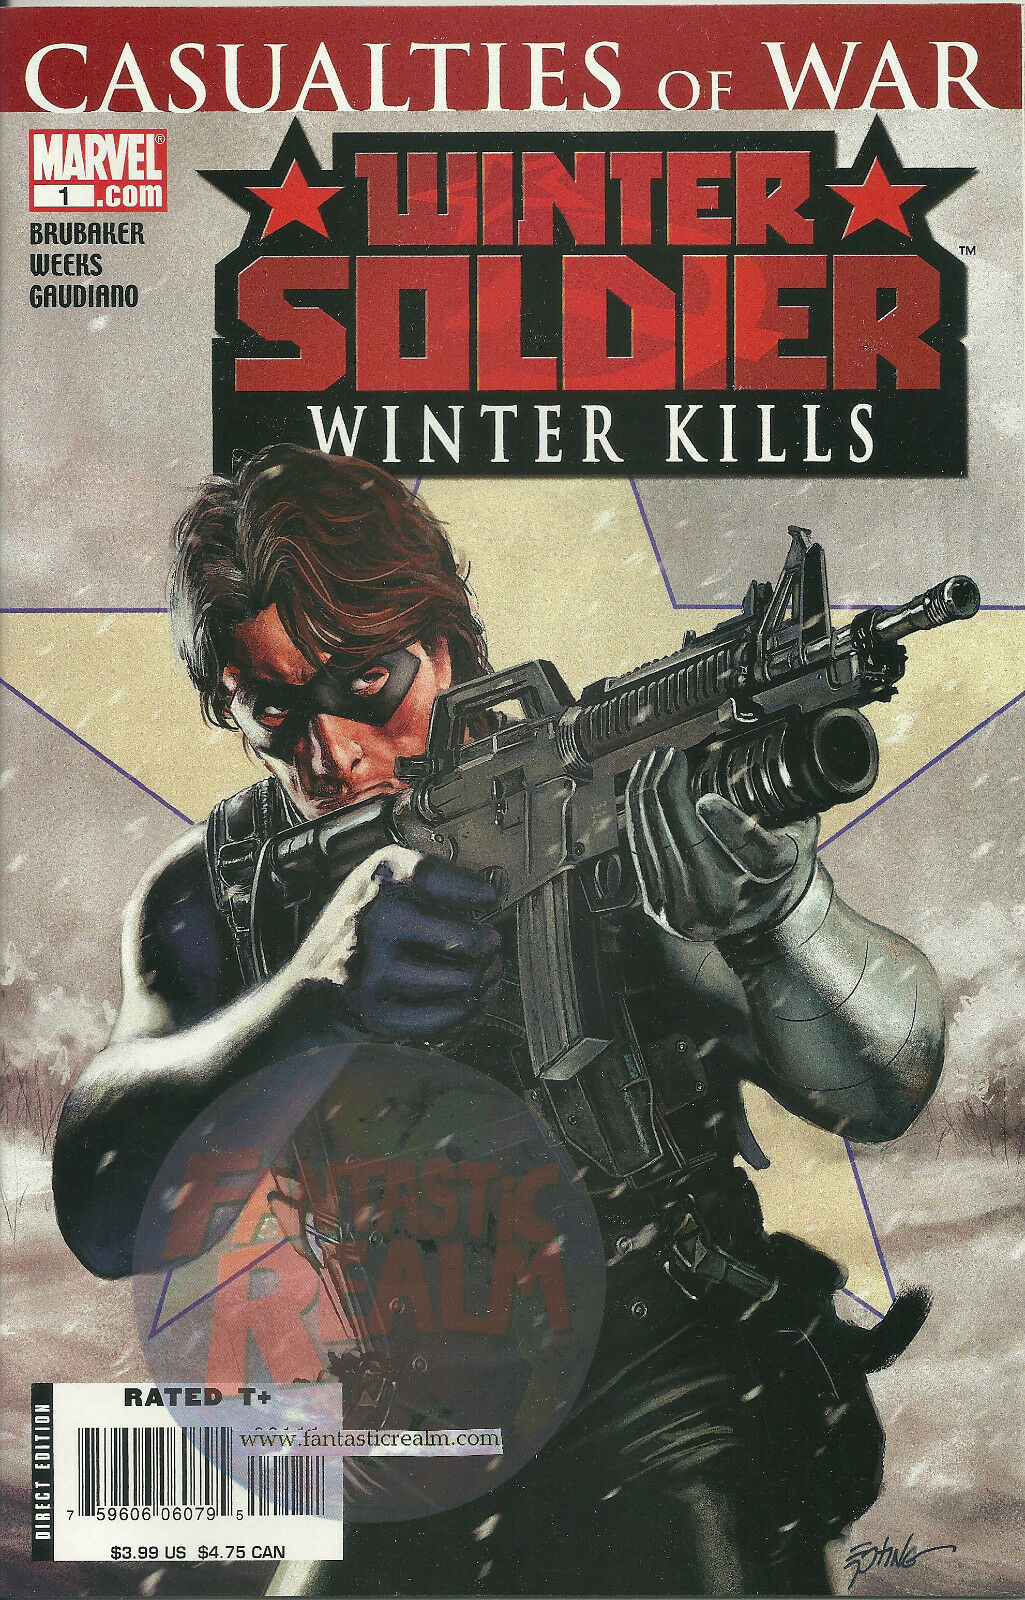 WINTER SOLDIER: WINTER KILLS #1 (2007) Marvel Comics